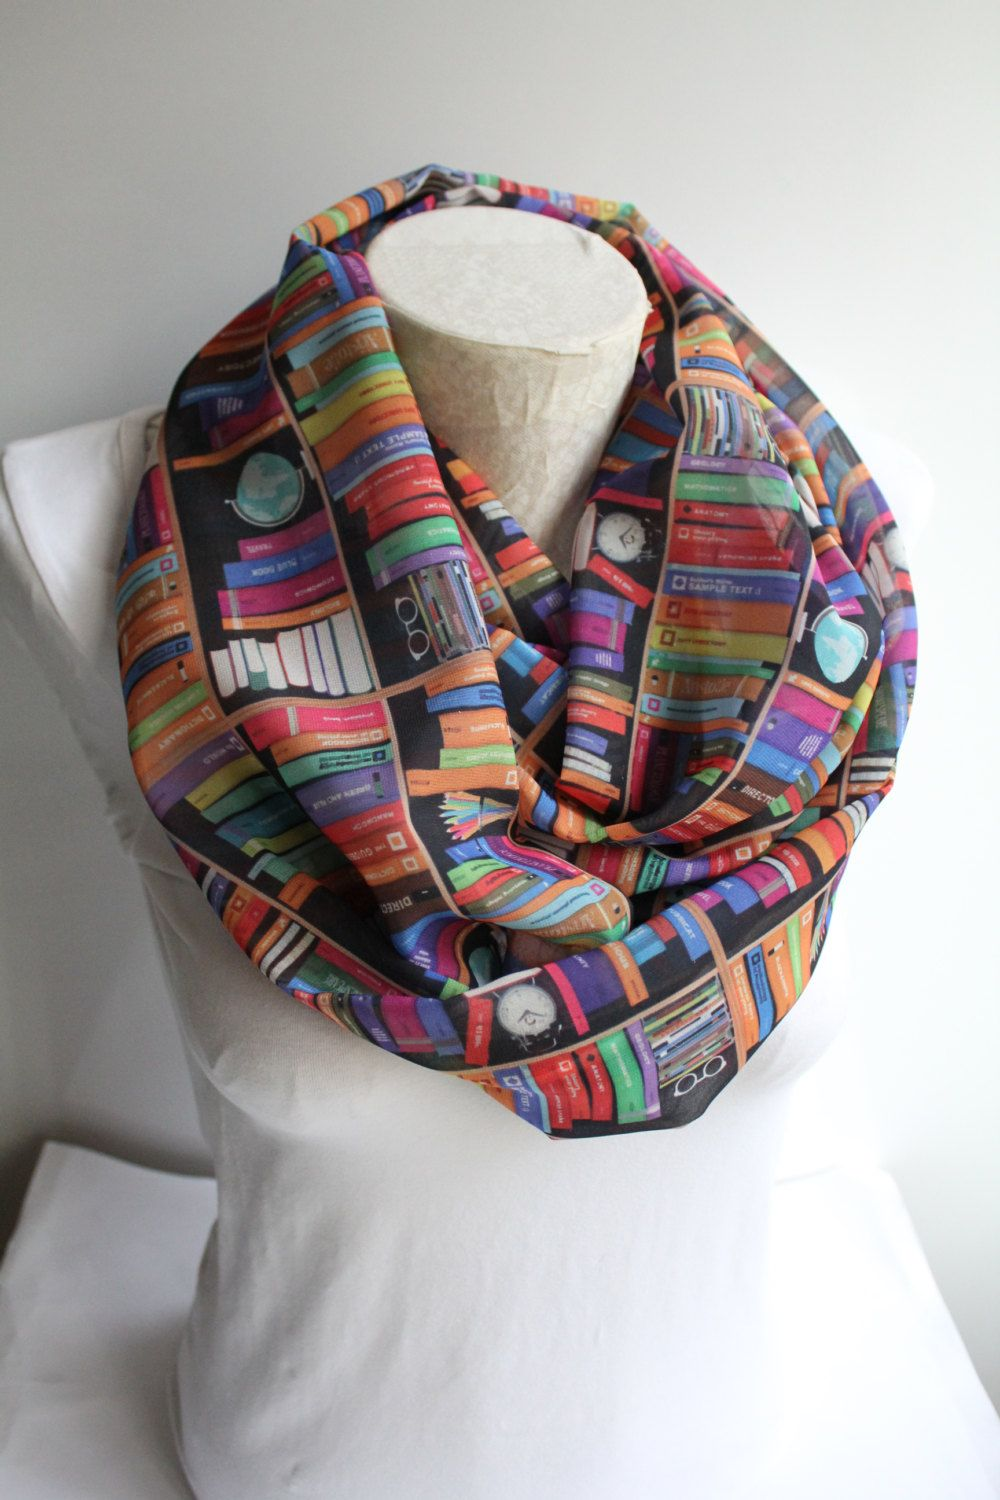 Book infinity scarf library birthday gift for her bookworms reader teacher nerd